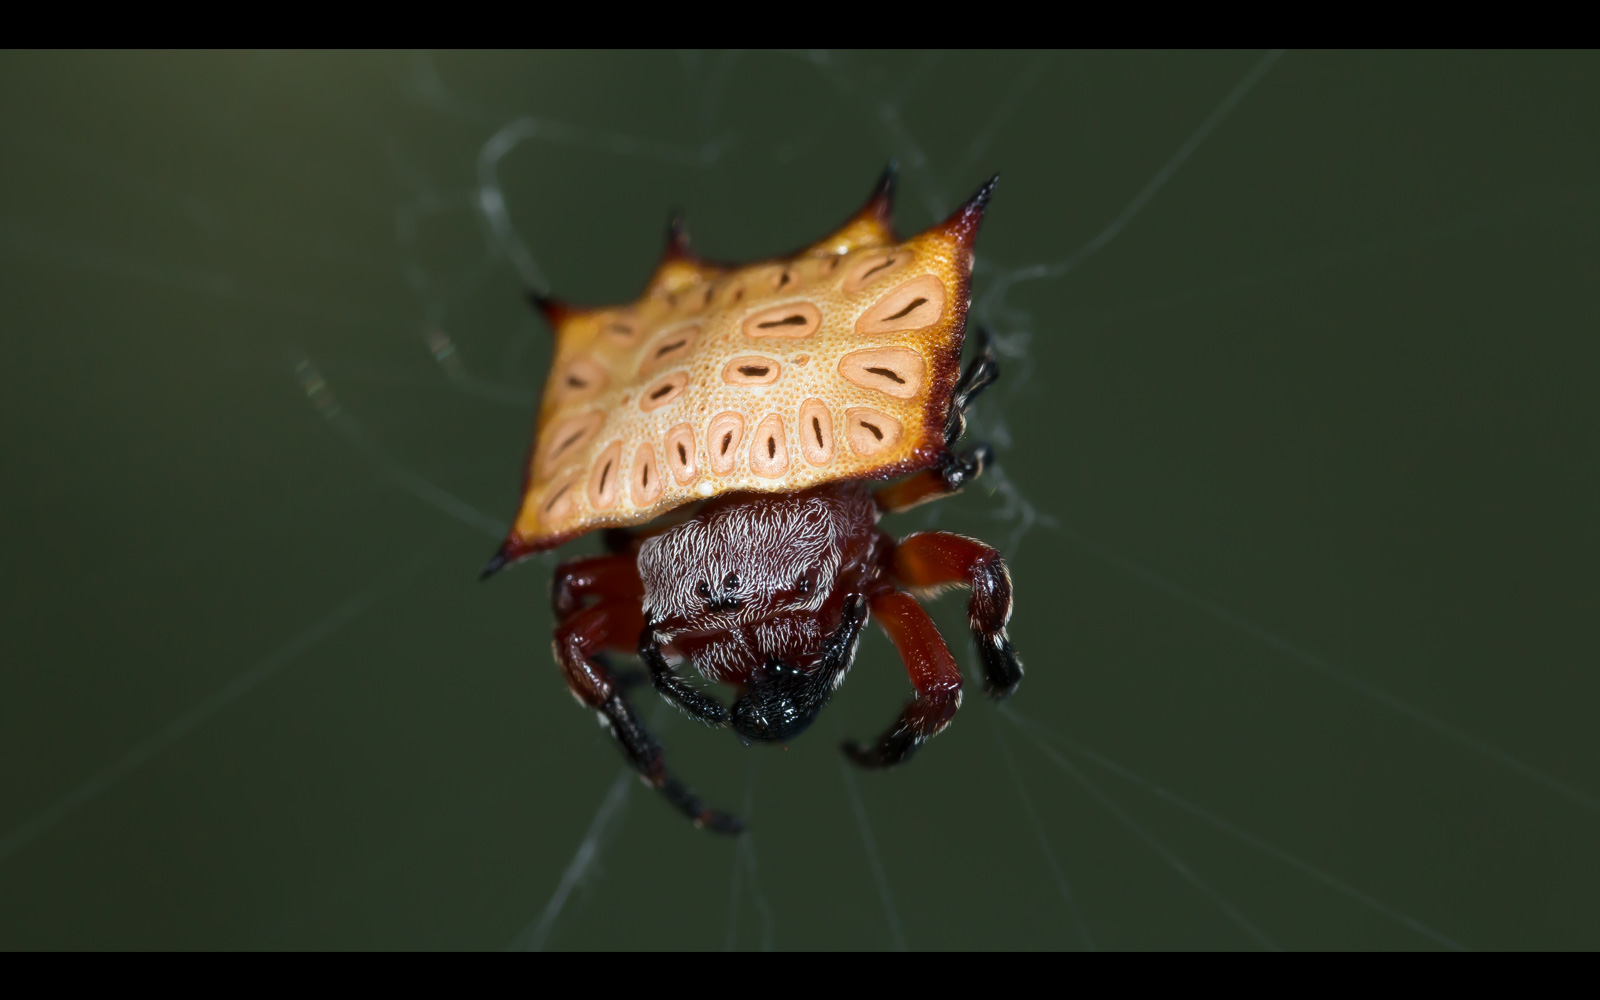 A box kite spider (Isoxya tabulata) feeds on a weevil beetle in Greater Kruger National Park, South Africa © Eraine van Schalkwyk